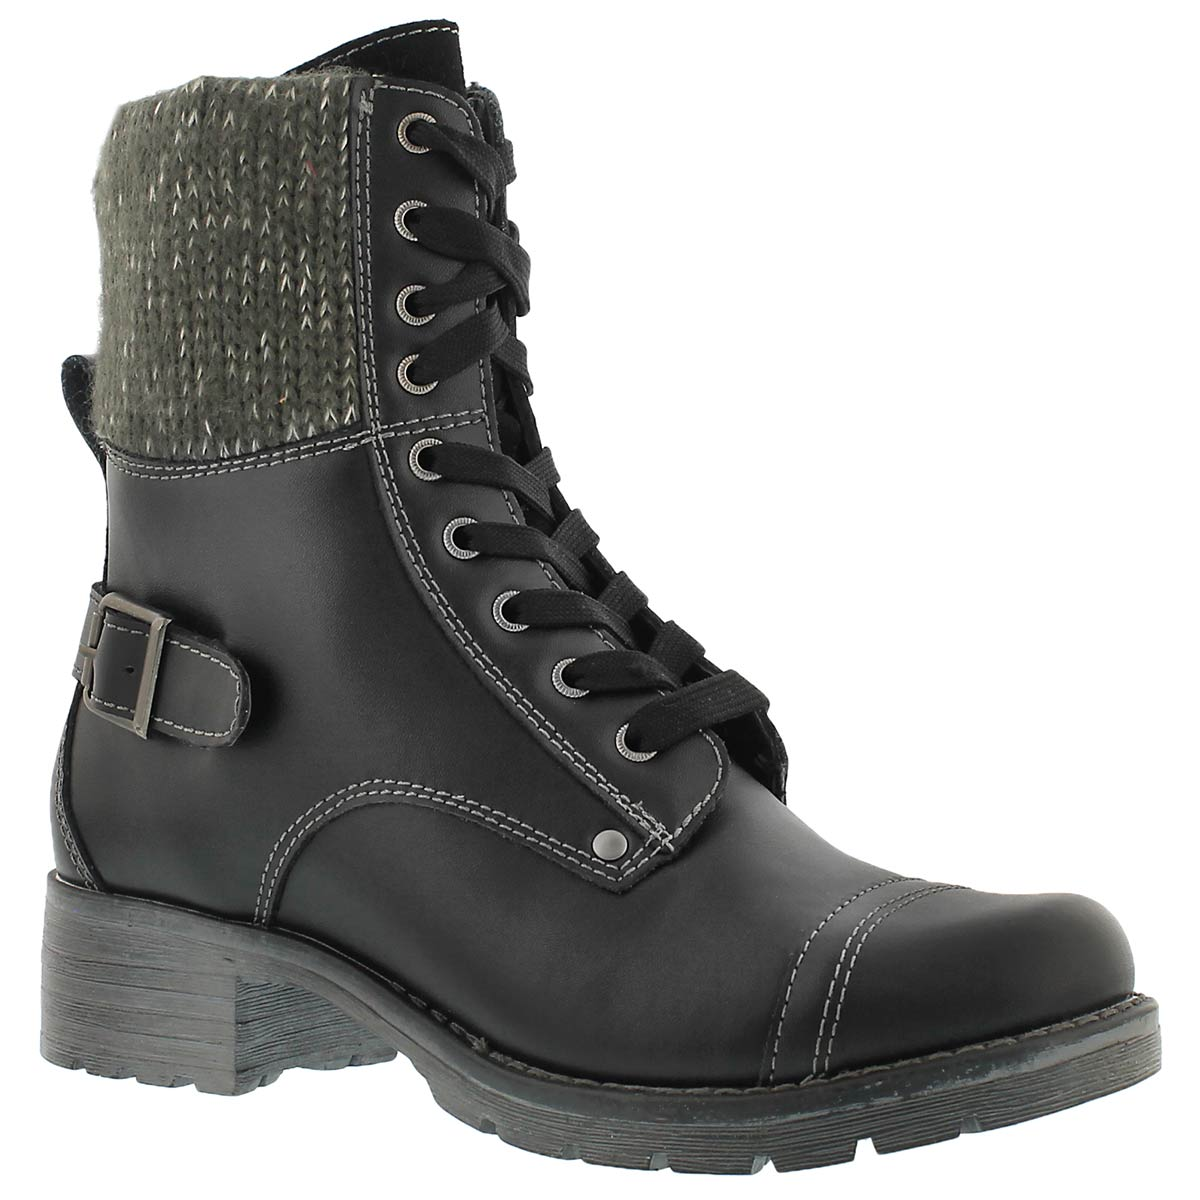 Women's DEEDEE black knit top combat boots